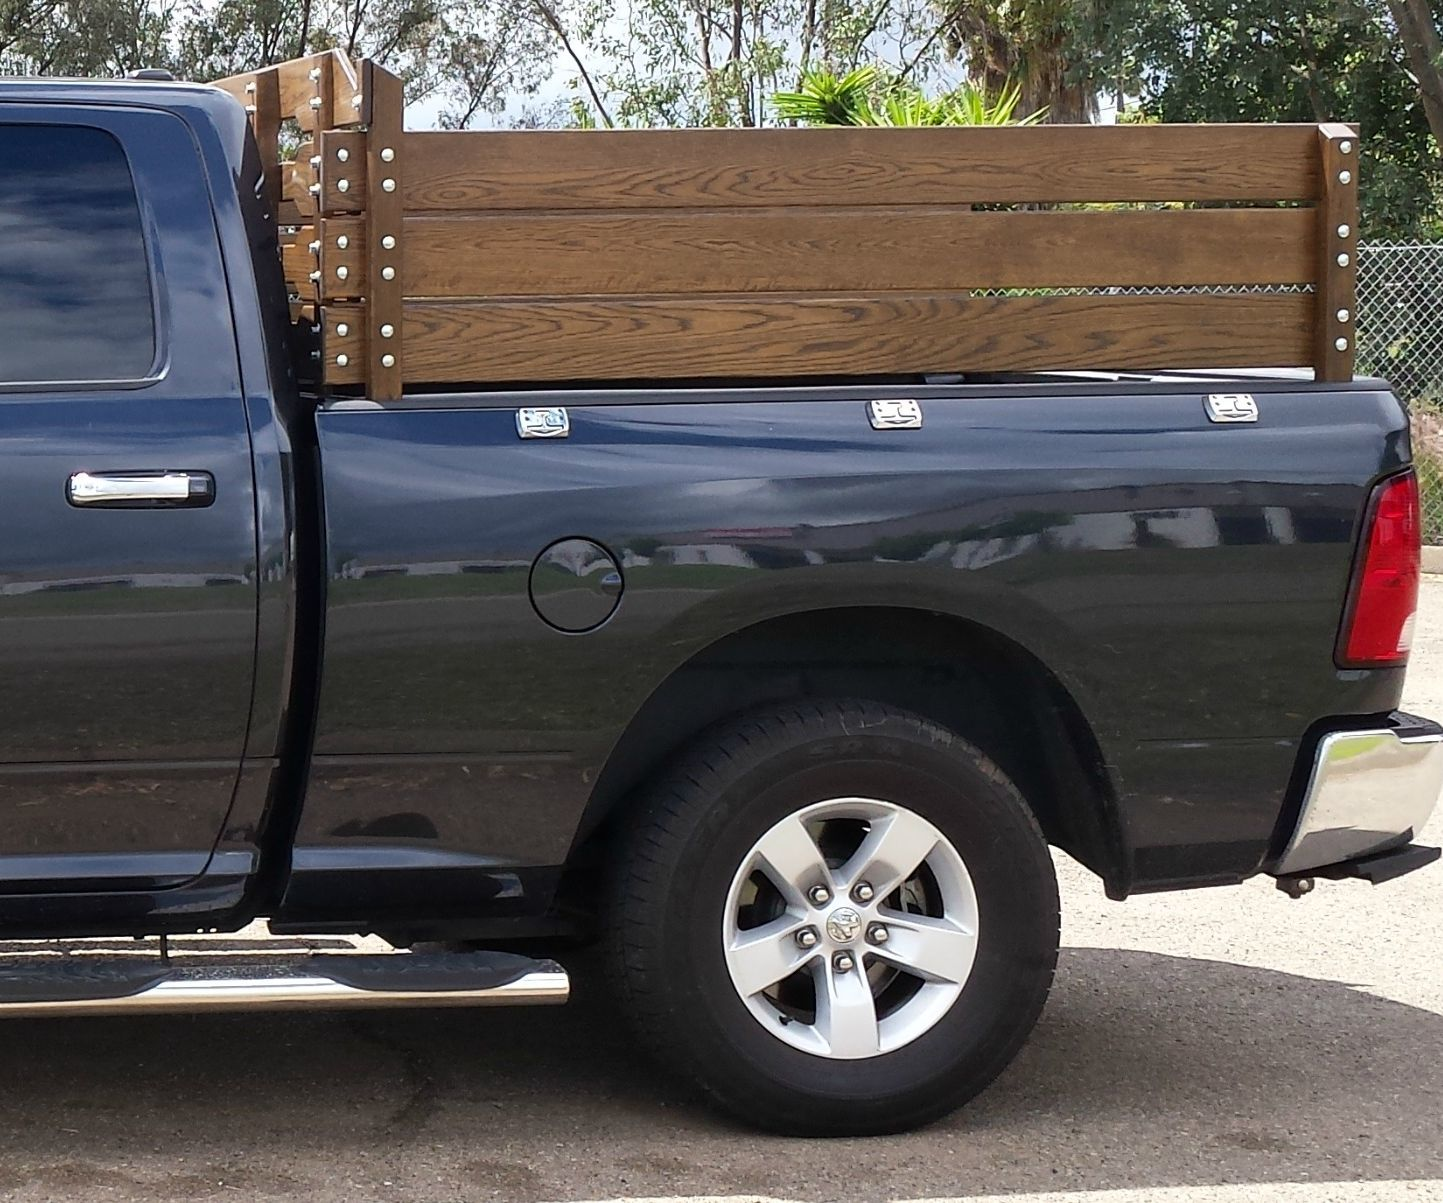 Stake Sides/Fence Sides for 2014 Dodge 1500 4x4 Pickup Truck